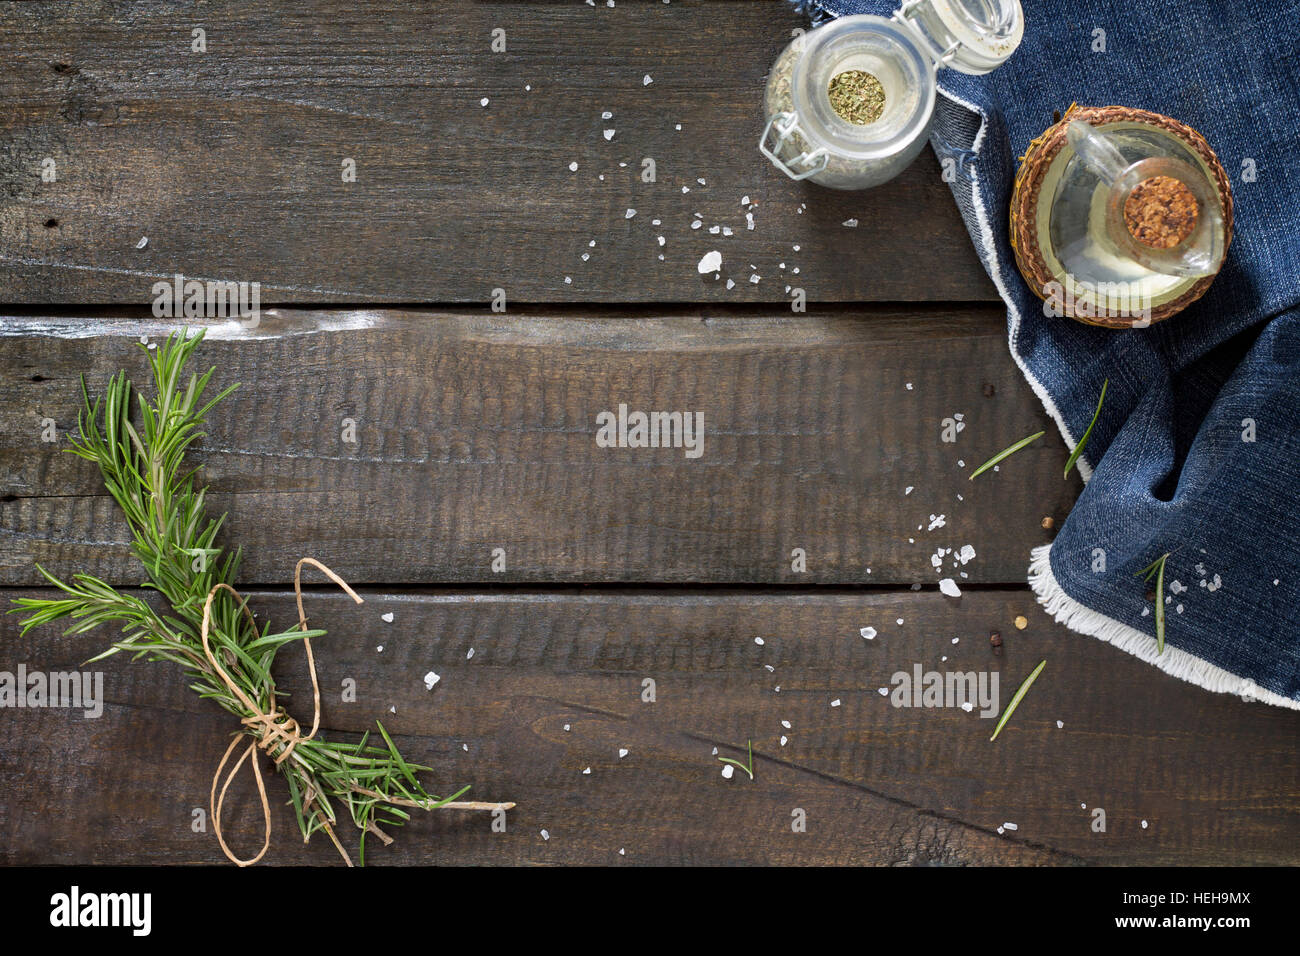 Sprigs of rosemary tied with string, oil and spices on a wooden table. Copy space. - Stock Image